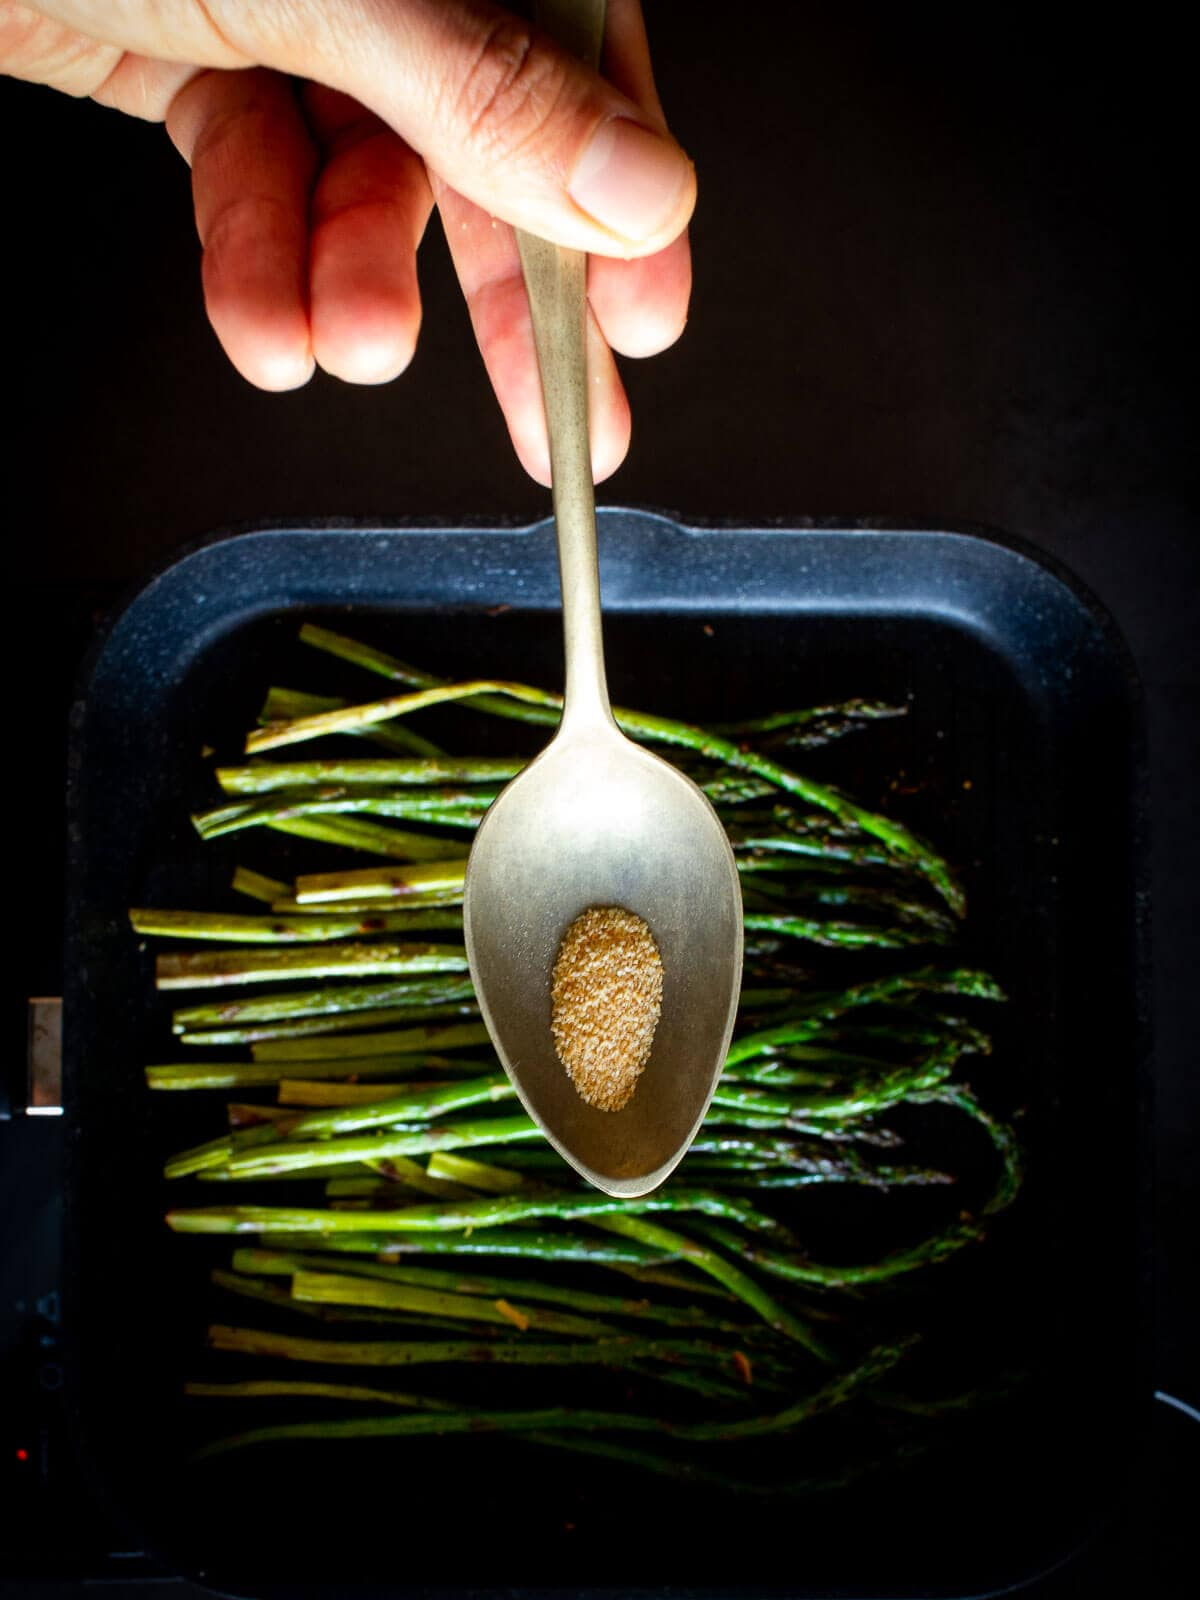 Grilled Asparagus Garlic Powder